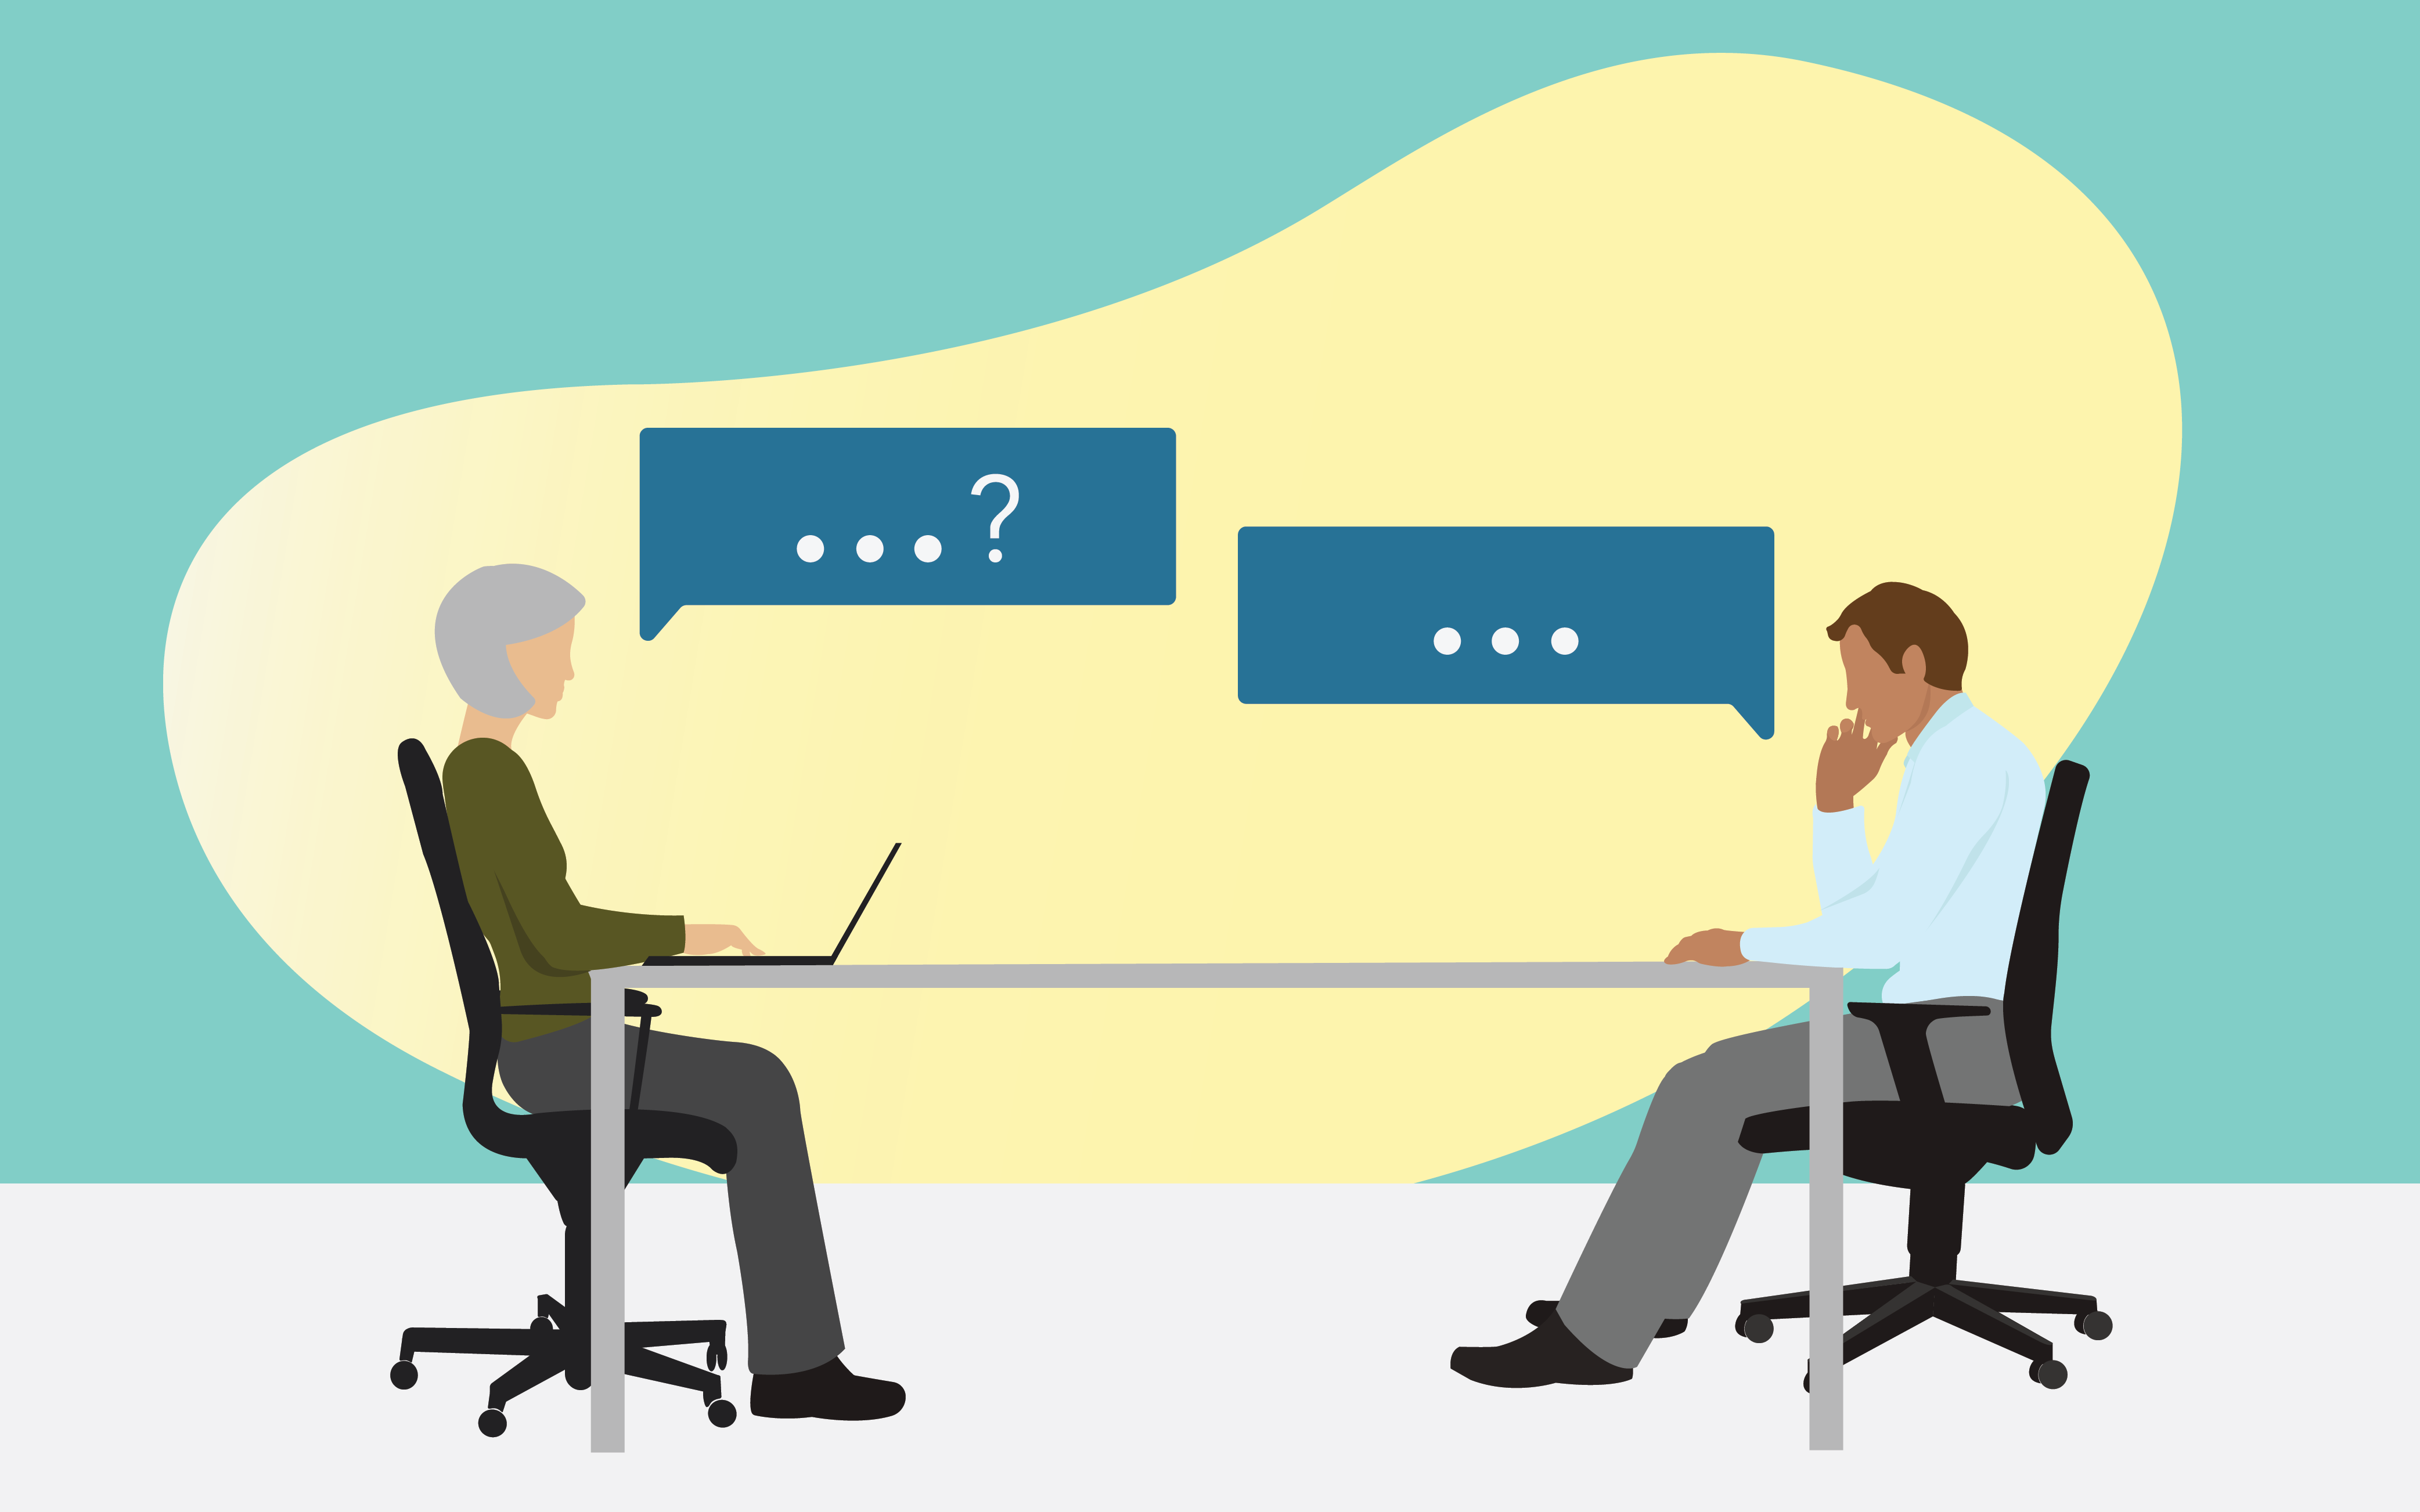 """Two people in a meeting sitting across from each other with two speech bubbles that say """"...?"""" and """"..."""". Illustration"""